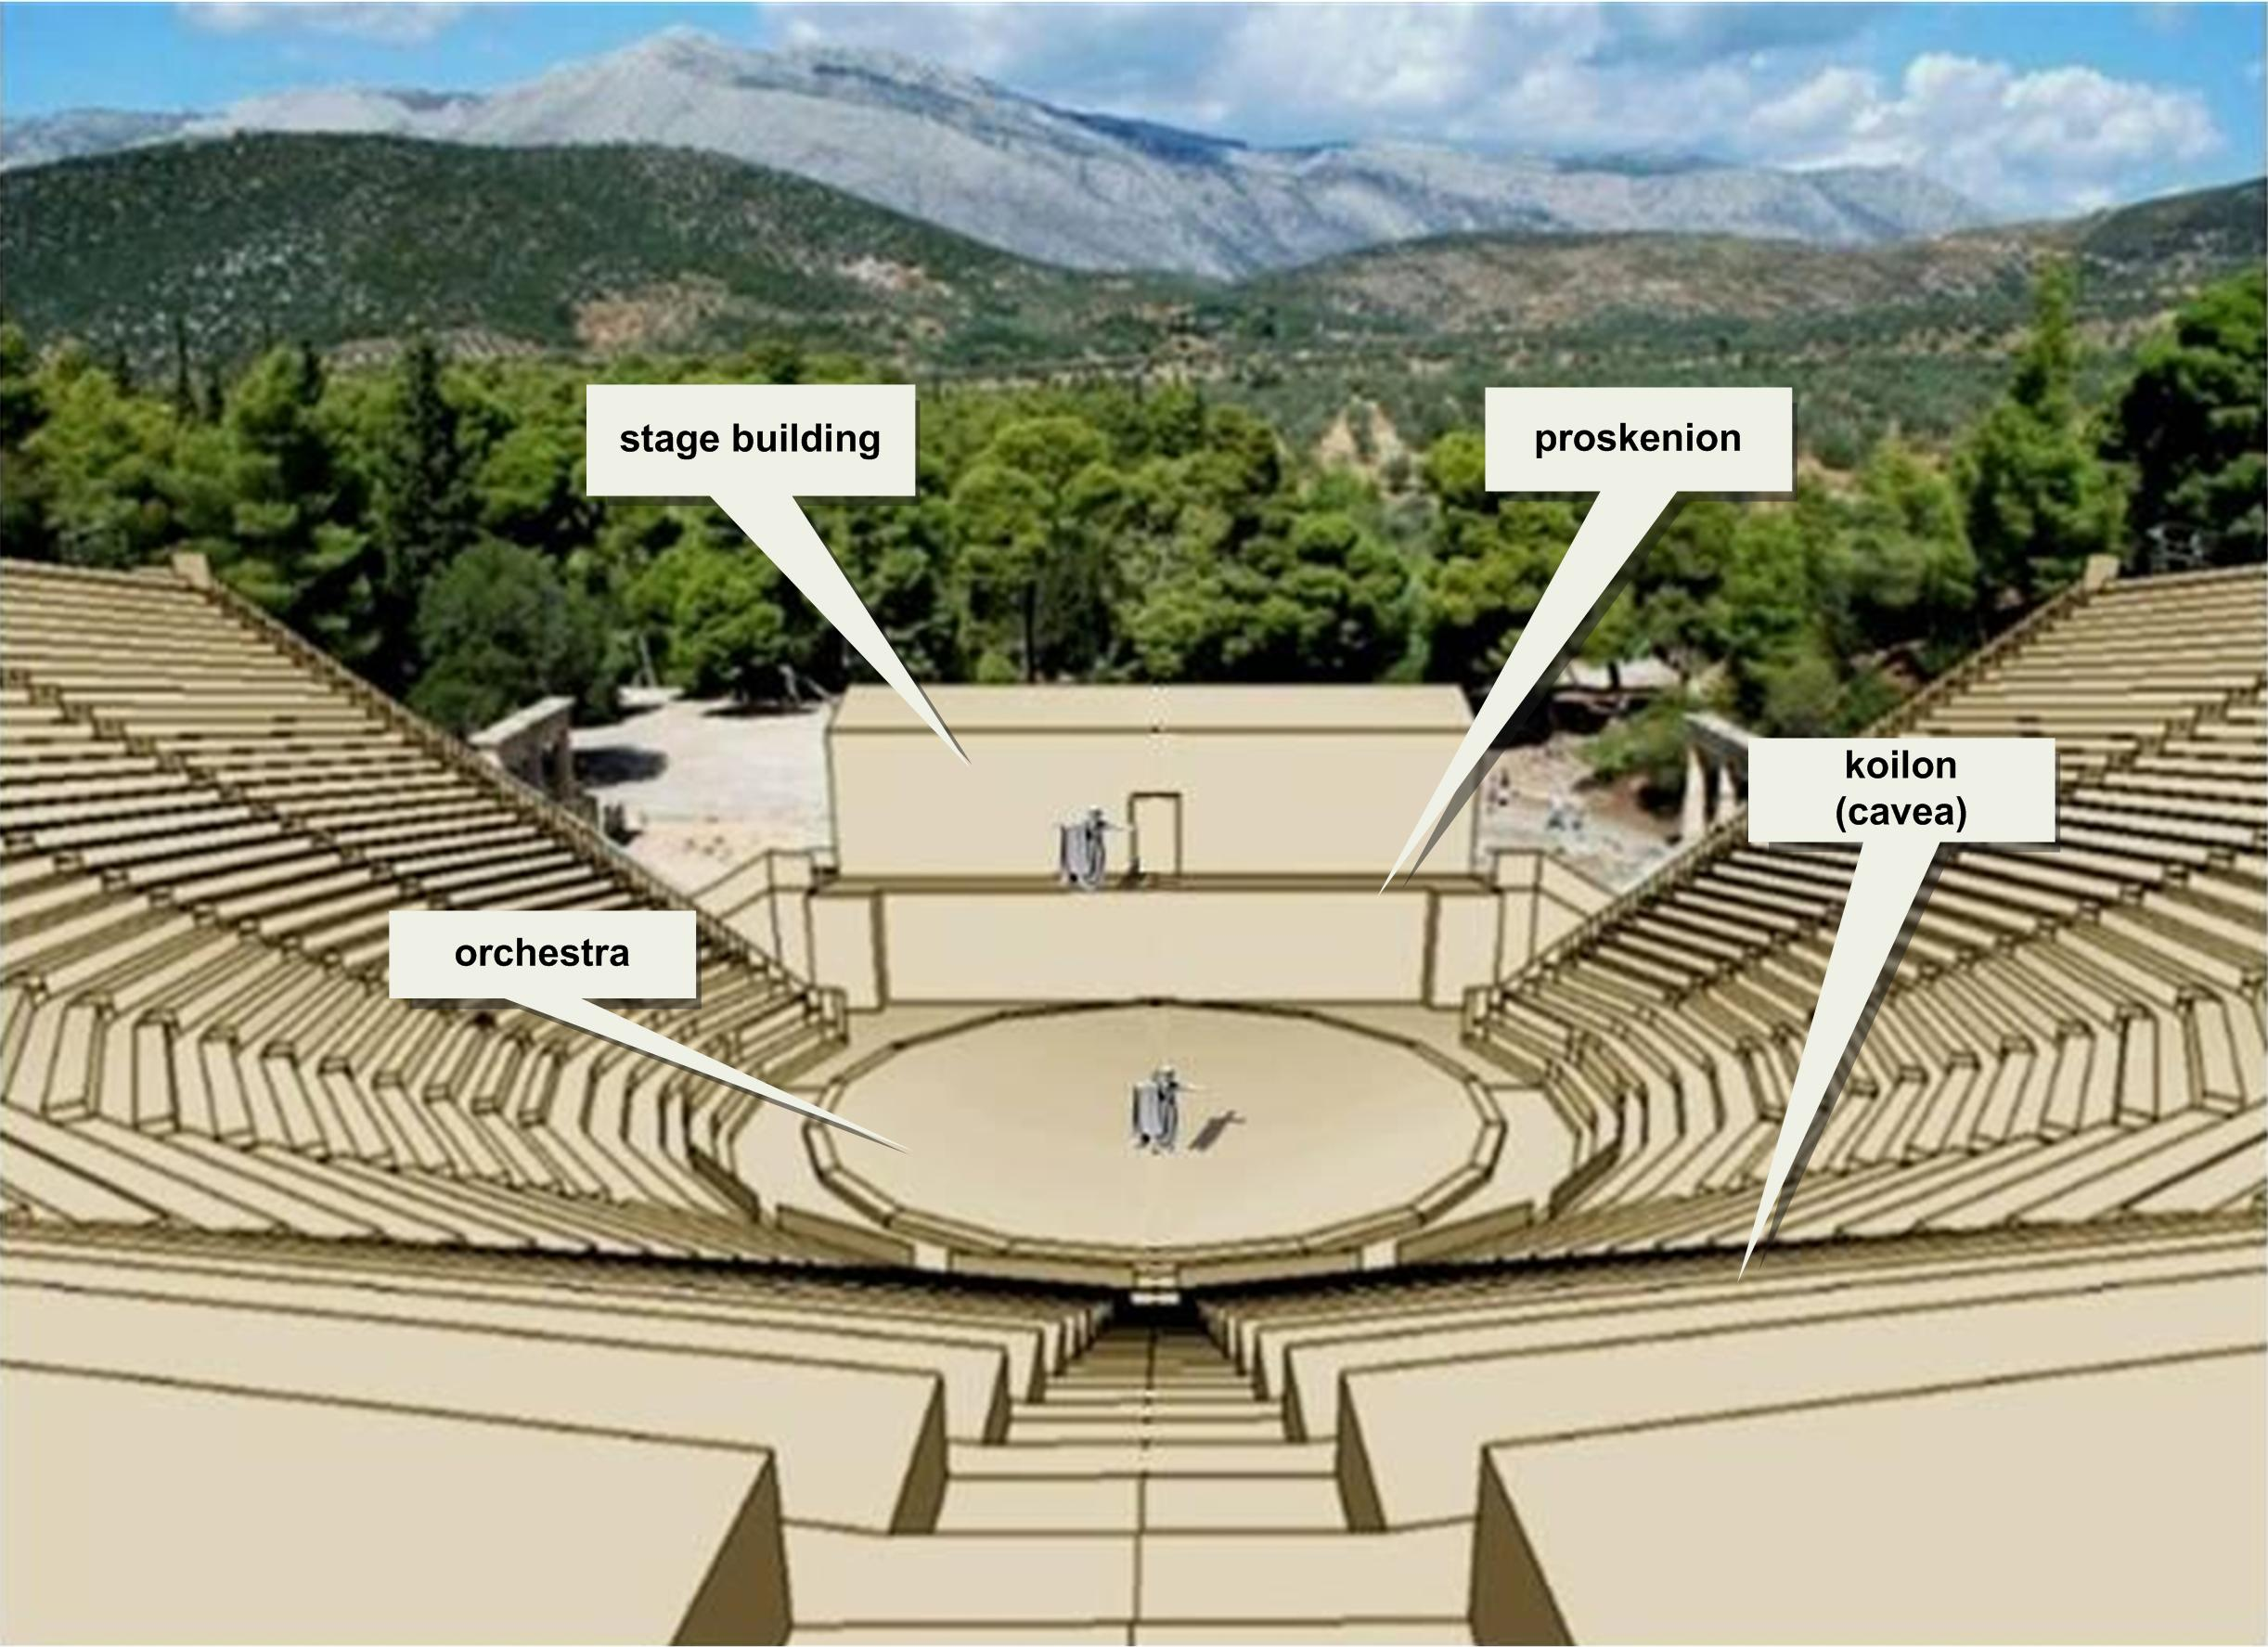 greek stage diagram kenmore electric dryer wiring  the origins of building acoustics for theatre and music